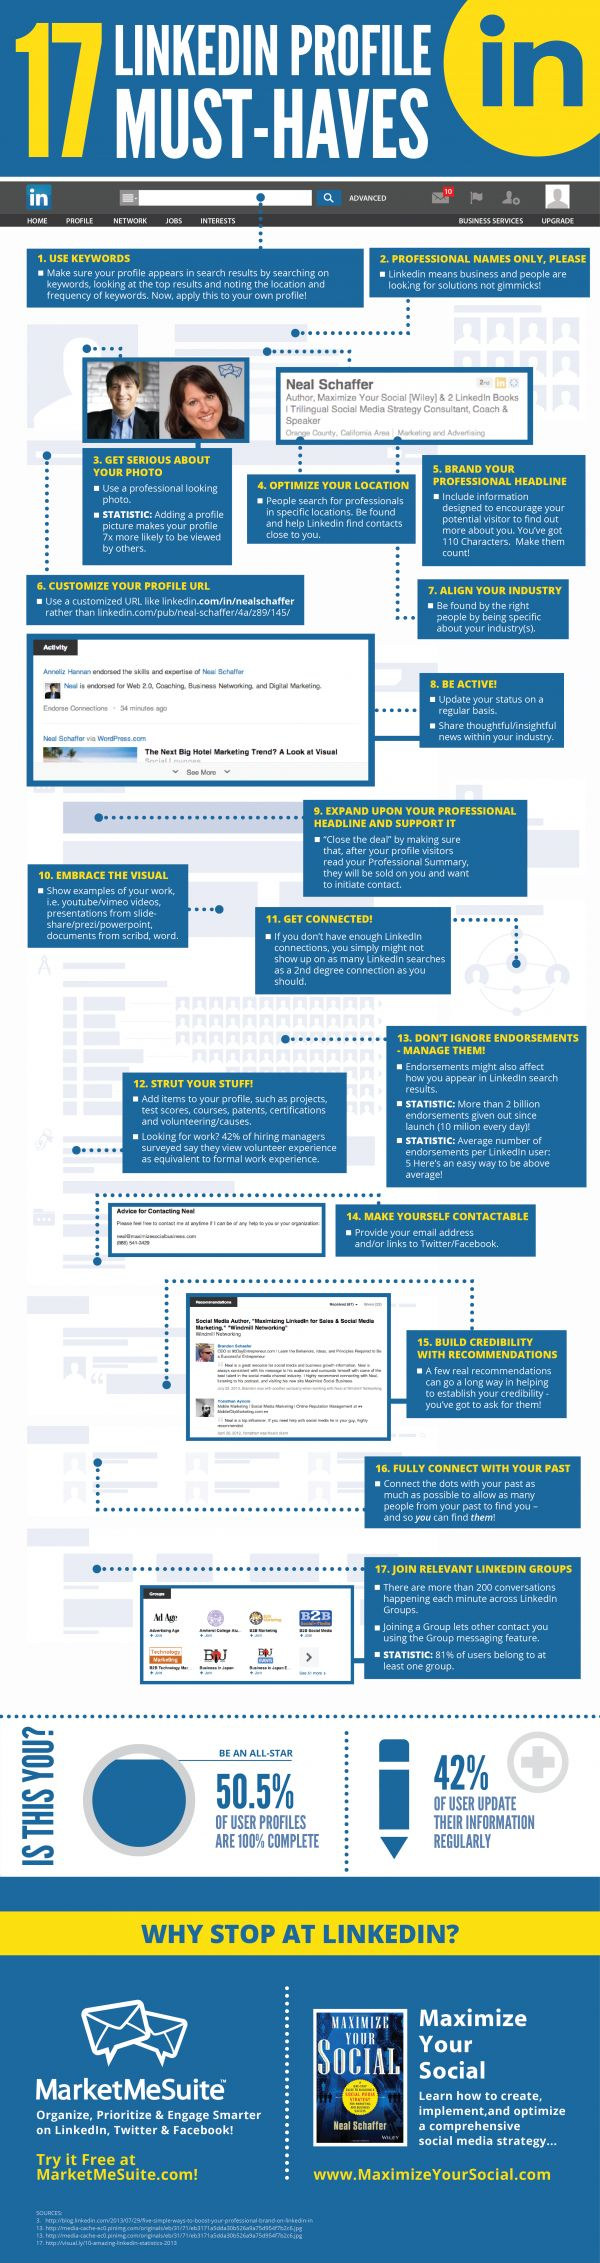 17 LinkedIn Profile Must-Haves #infographic